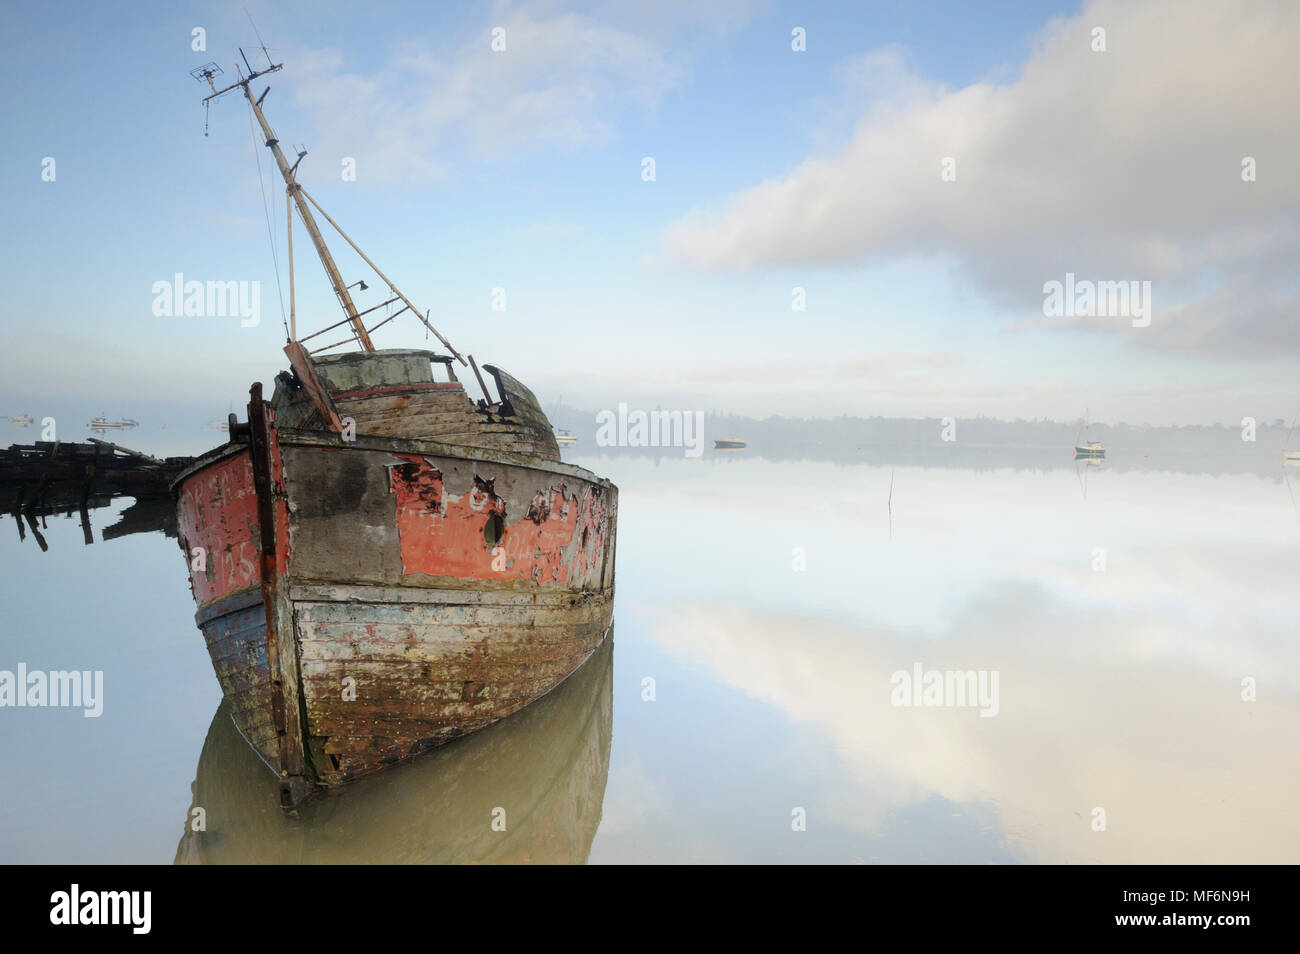 Old Thames barge in rising mist - Stock Image